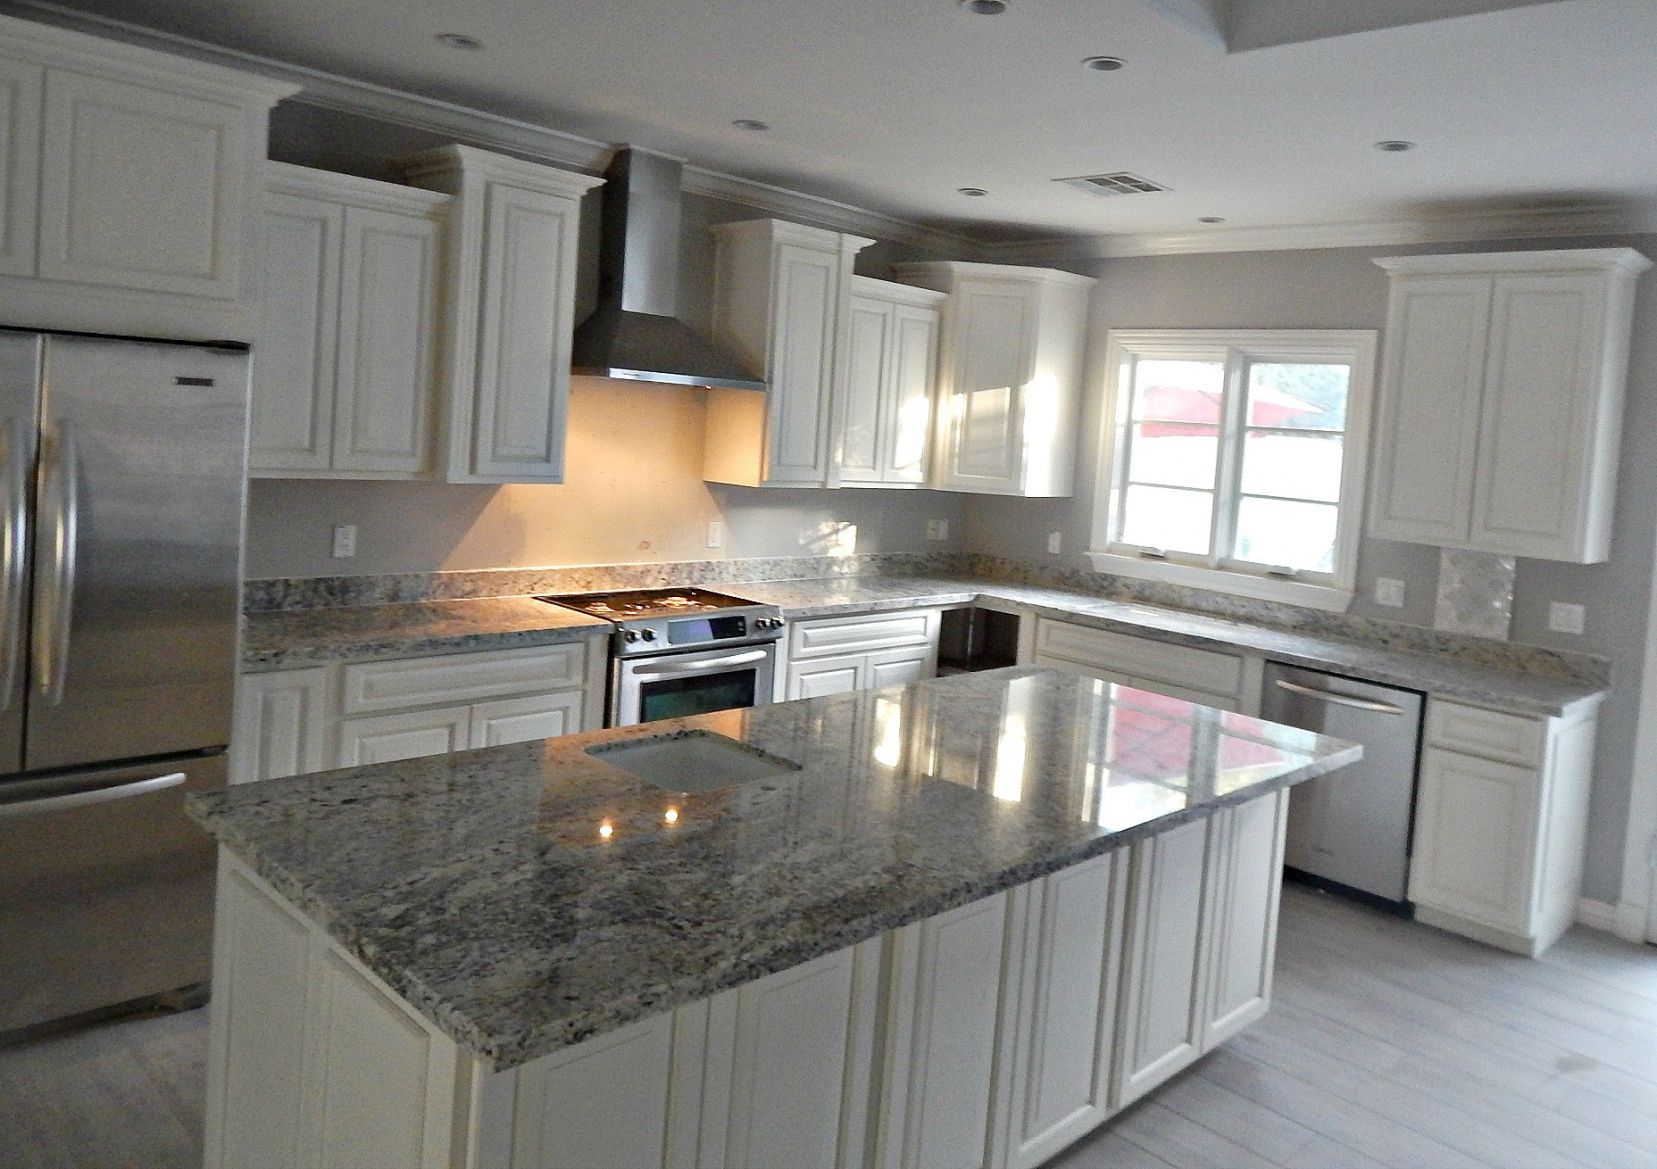 Awesome 77+ How To Re Polish Granite Countertops   Small Kitchen Island Ideas With  Seating Check